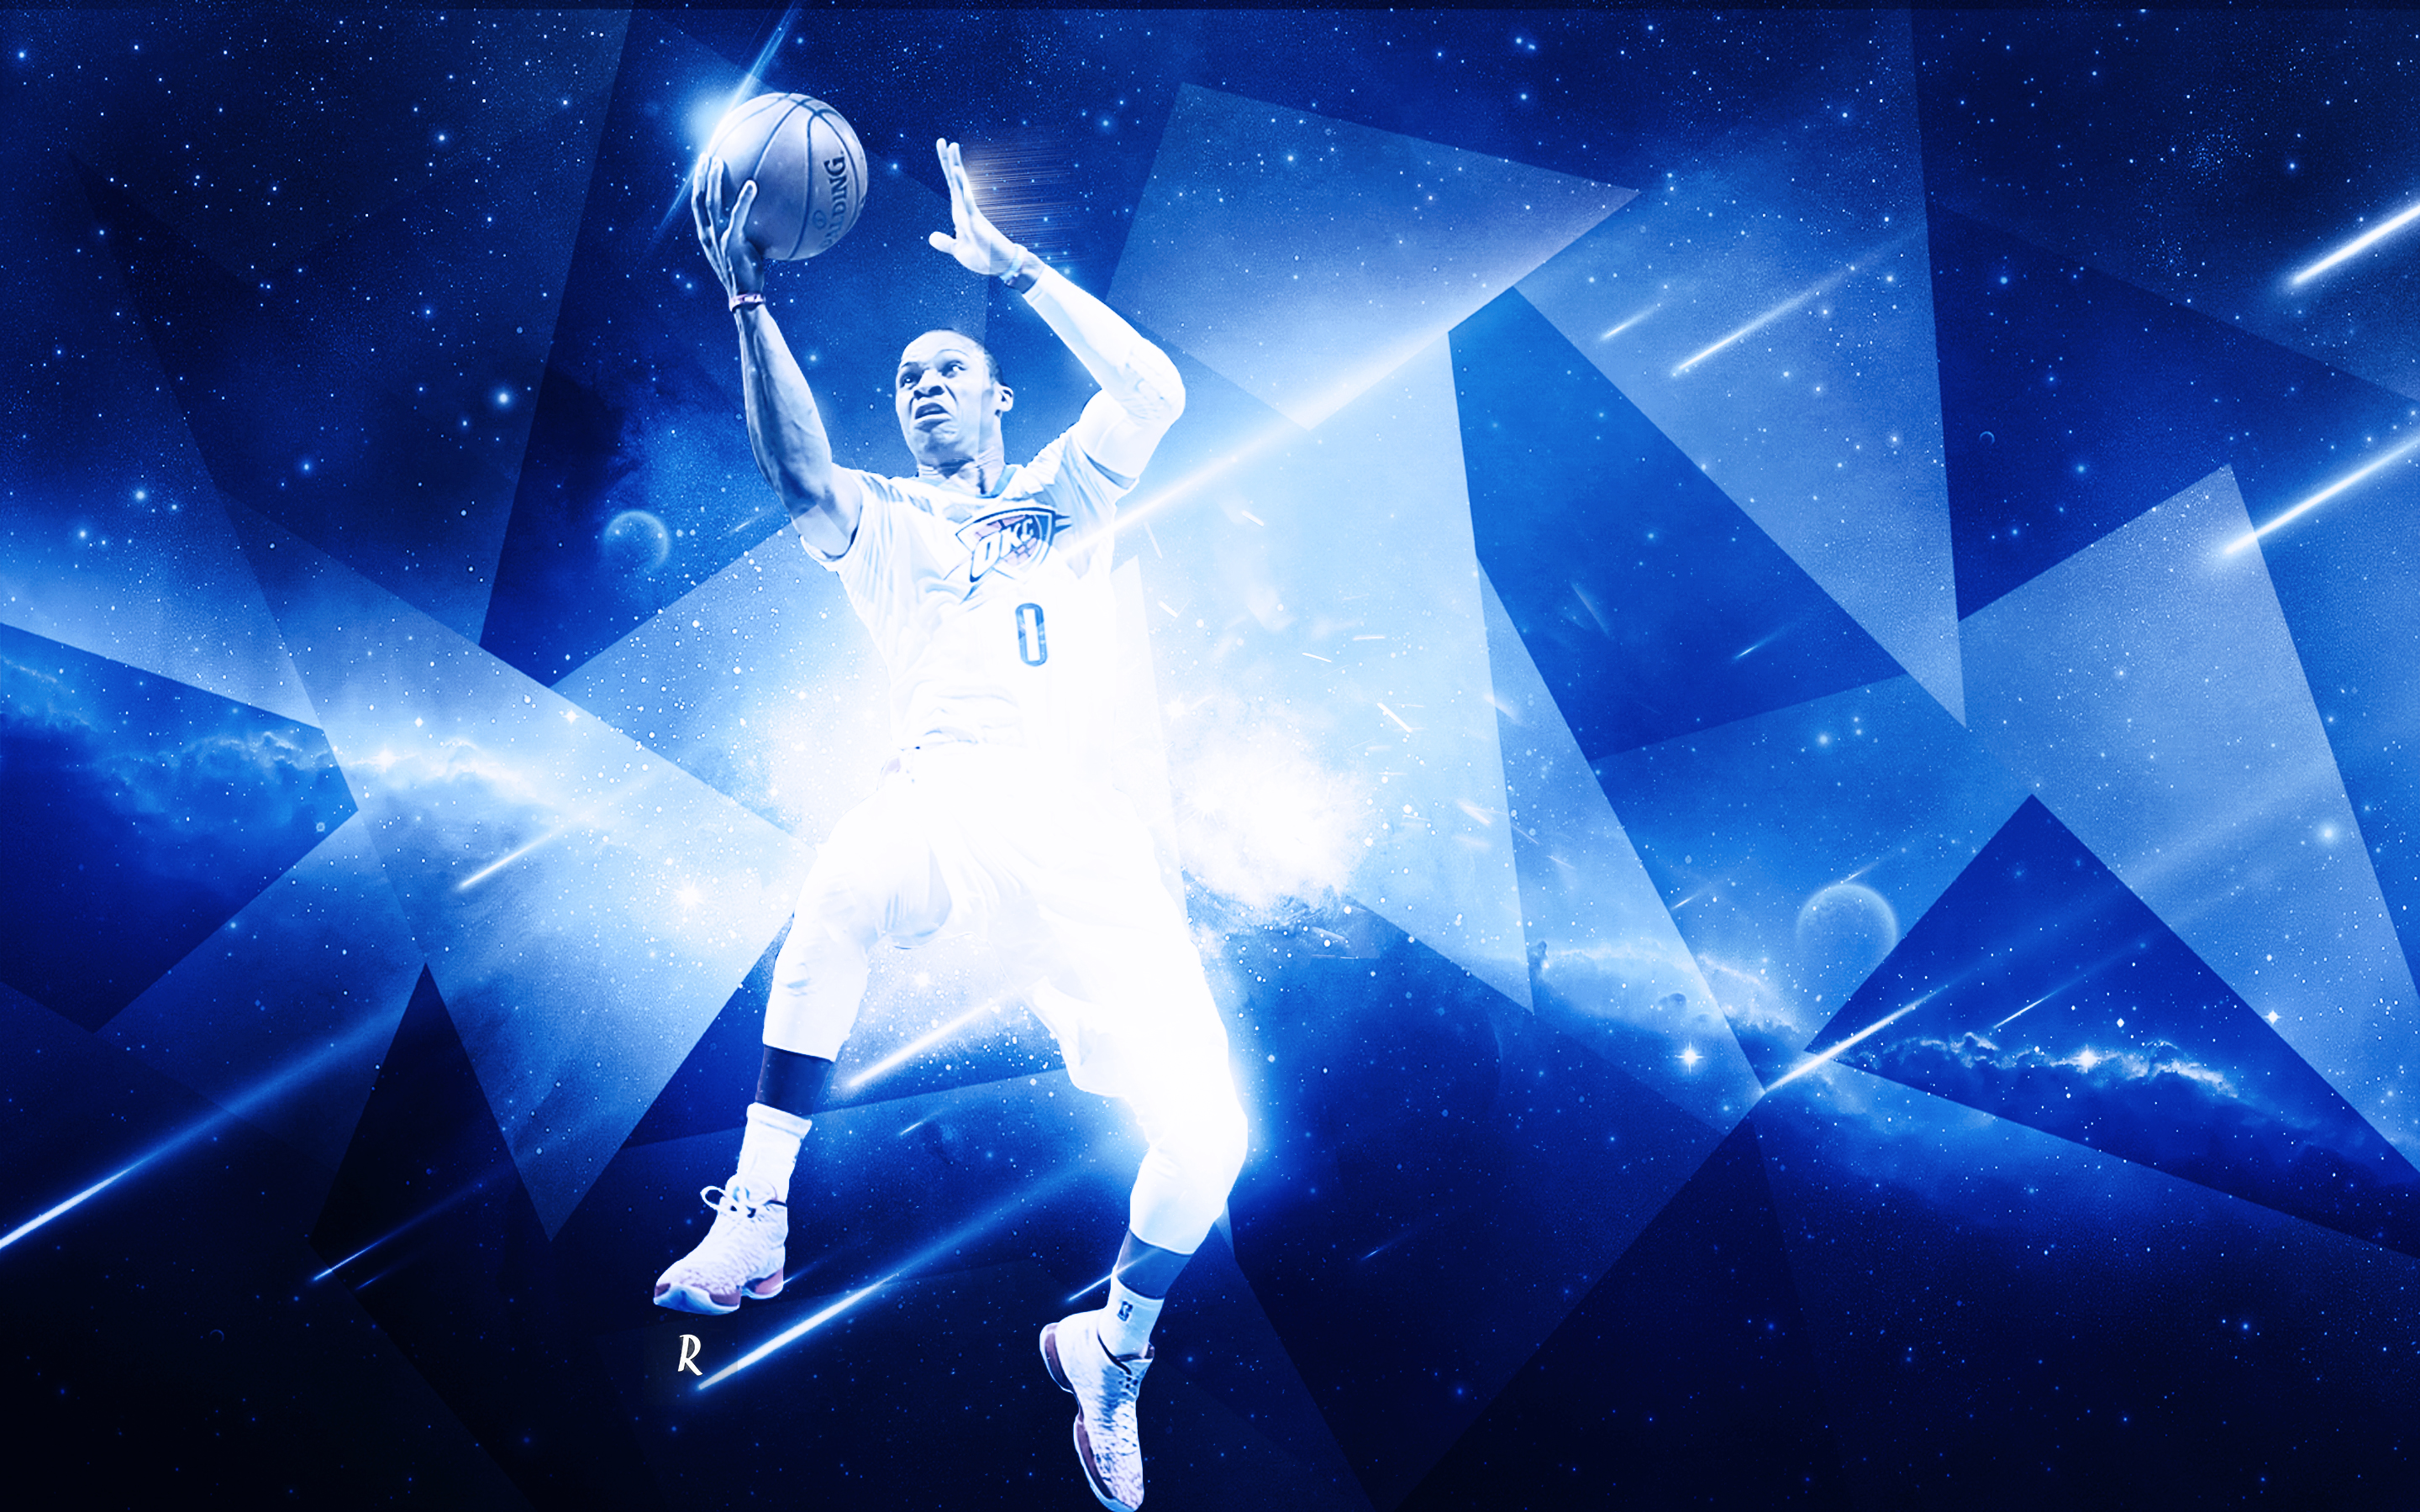 Russell westbrook wallpaper iphone wallpapersafari - Russell Westbrook Wallpaper By Rubanarts Customization Wallpaper Hdtv